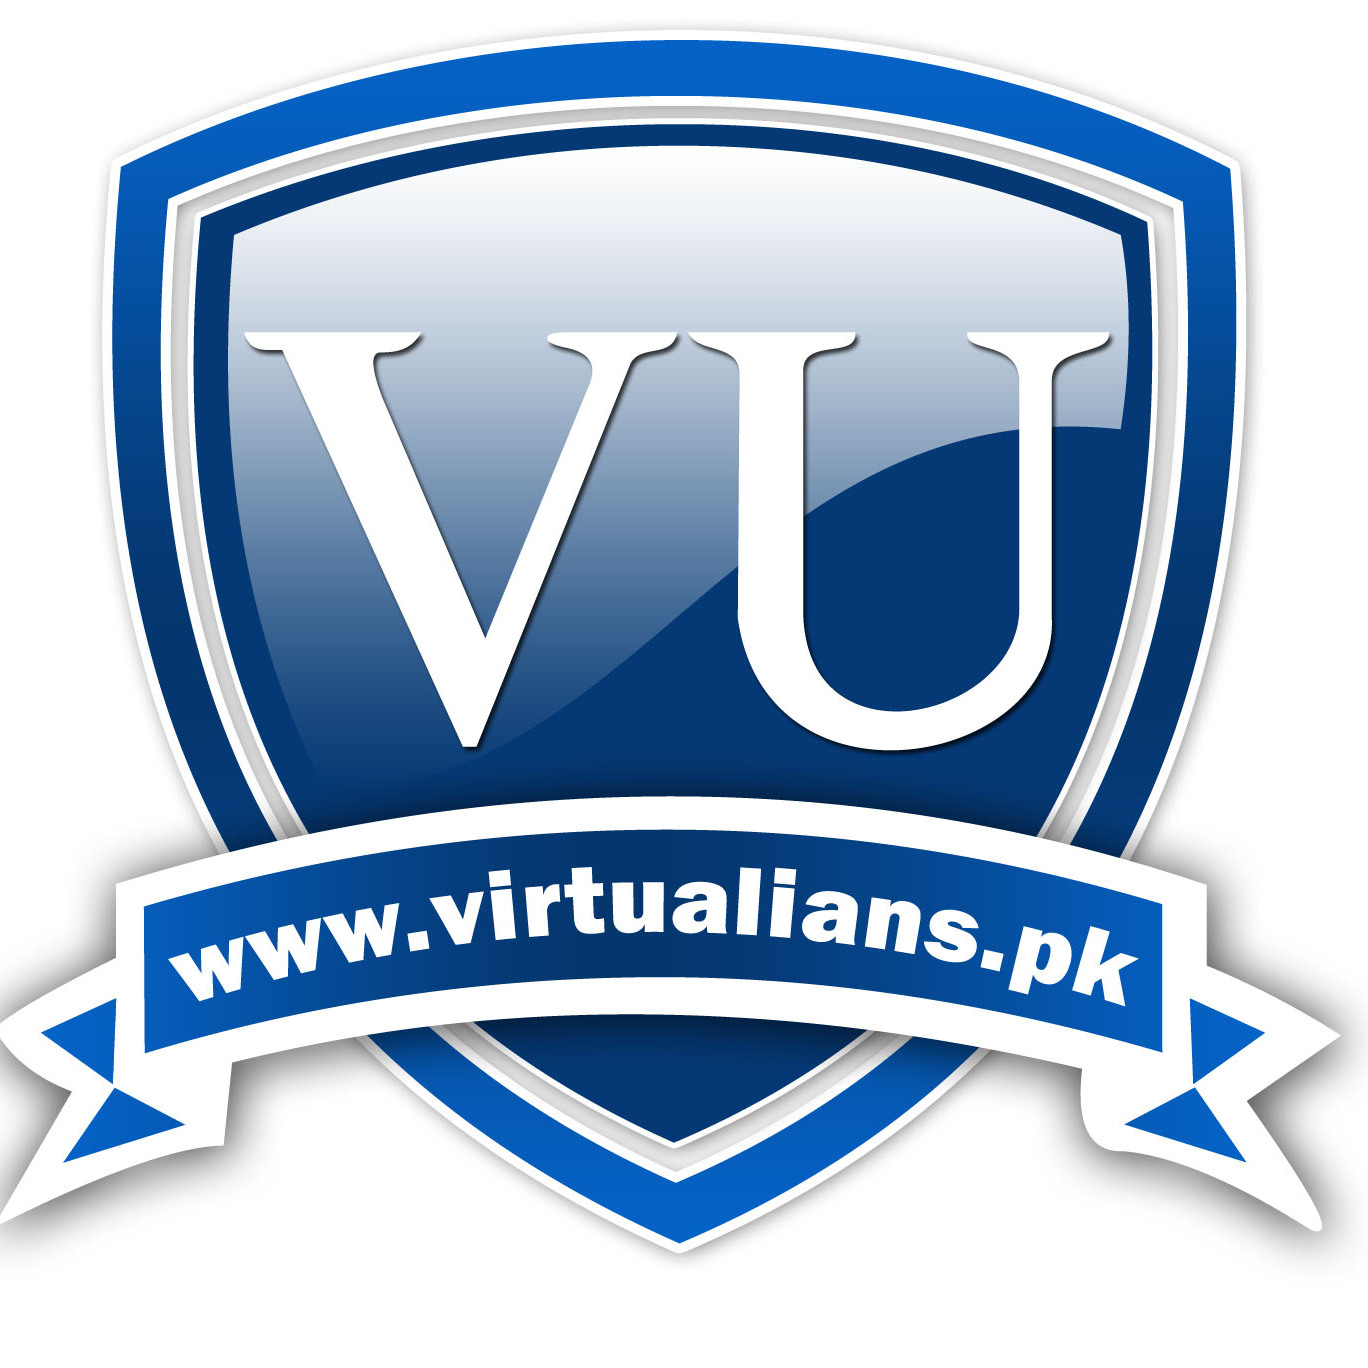 Virtual University of Pakistan (VUP) 10th Convocation of Bahawalpur has been postponed due to sudden death of VU Rector